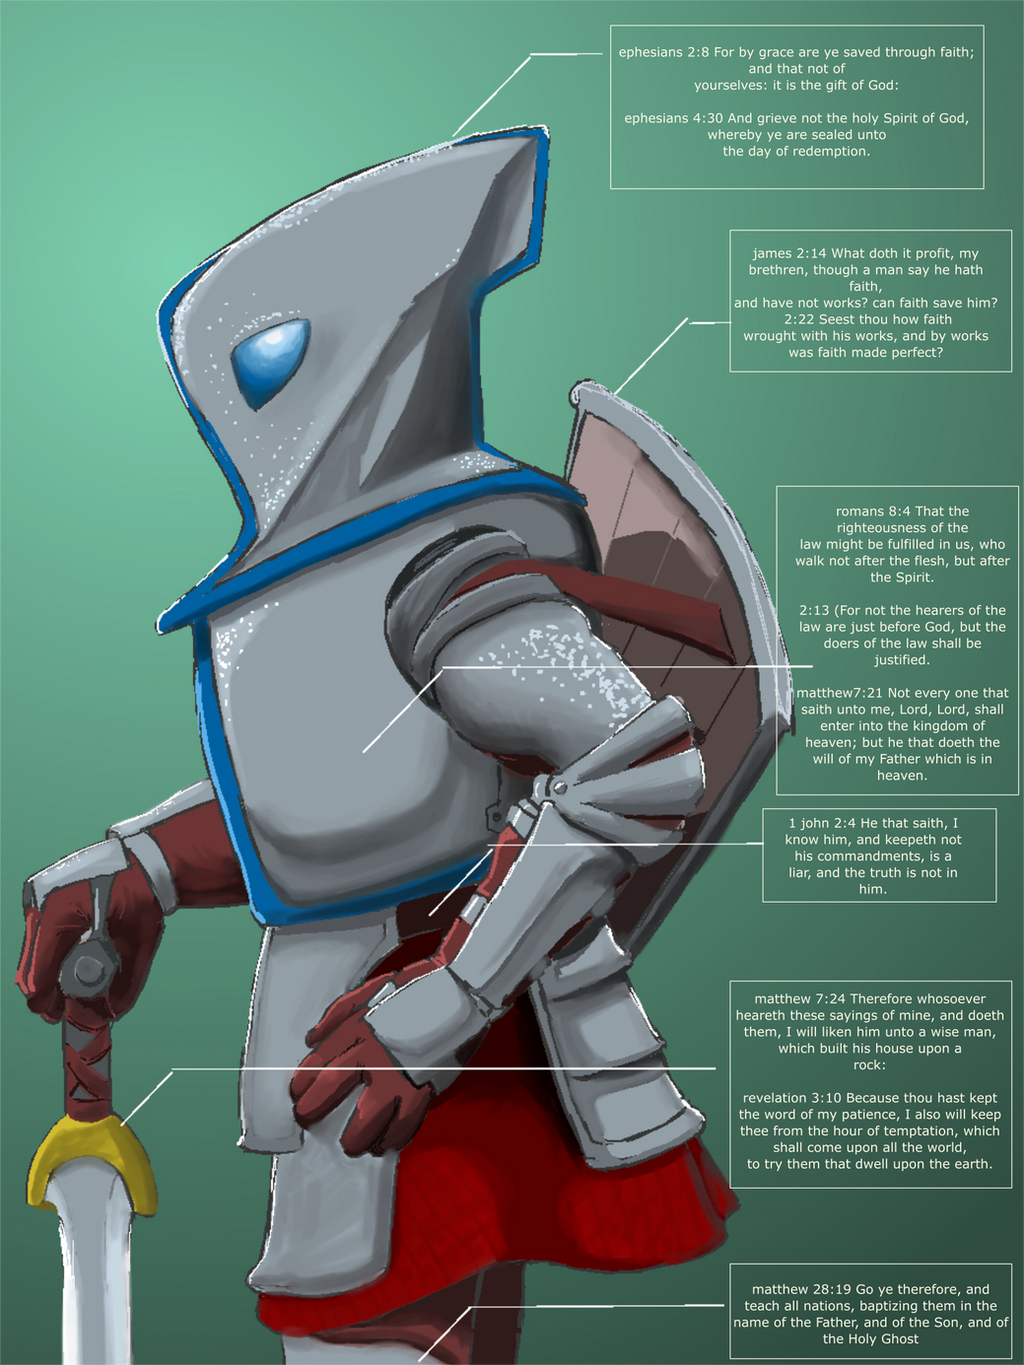 Armor of god by lan01 on deviantart armor of god by lan01 armor of god by lan01 altavistaventures Image collections